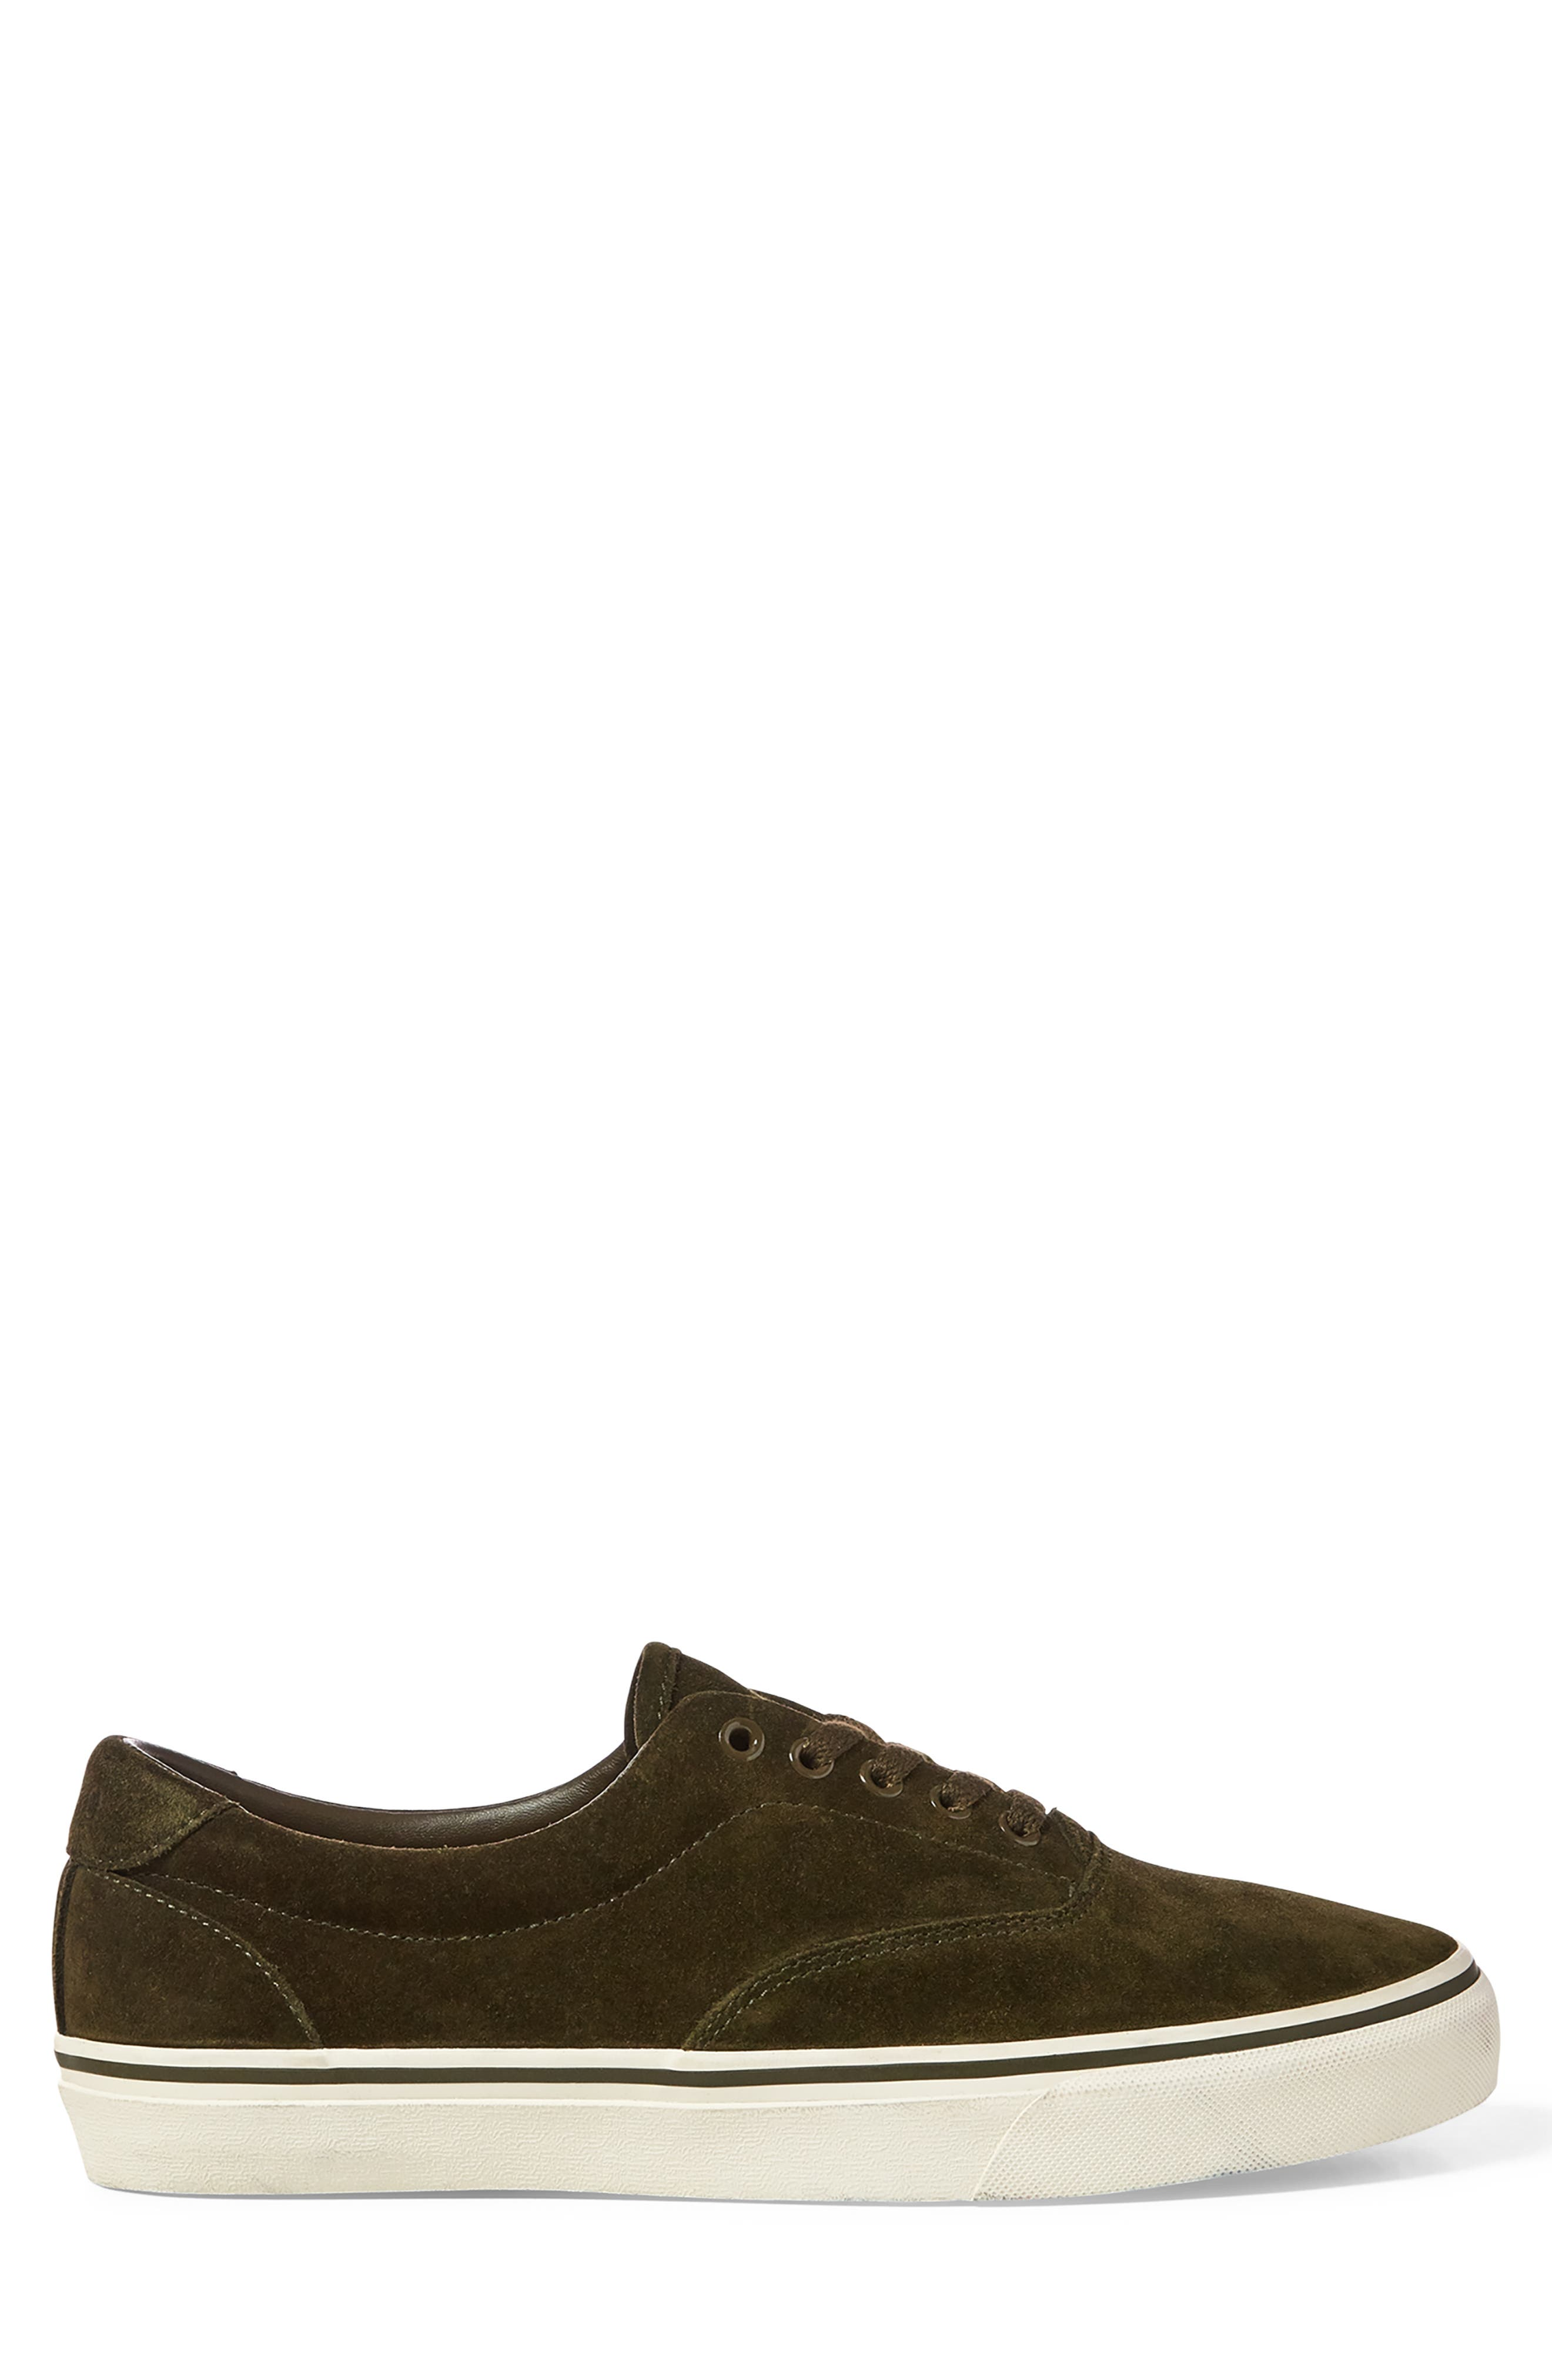 Thorton Sneaker,                             Alternate thumbnail 2, color,                             DEEP OLIVE SUEDE